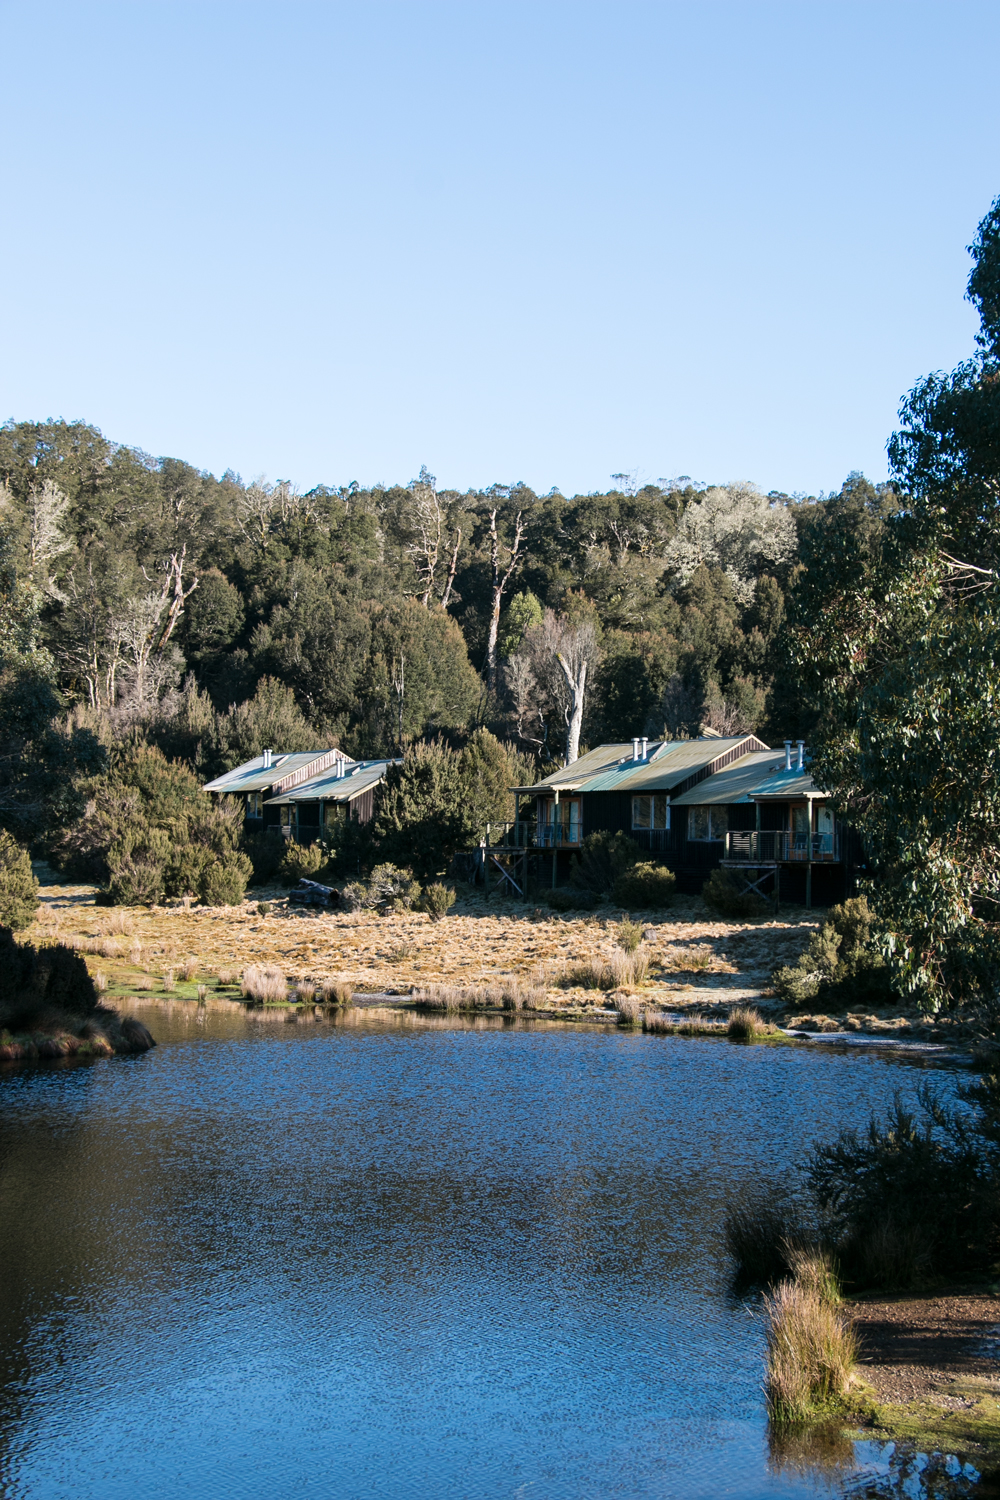 Enjoying the warm cosy nights at Cradle Mountain Lodge